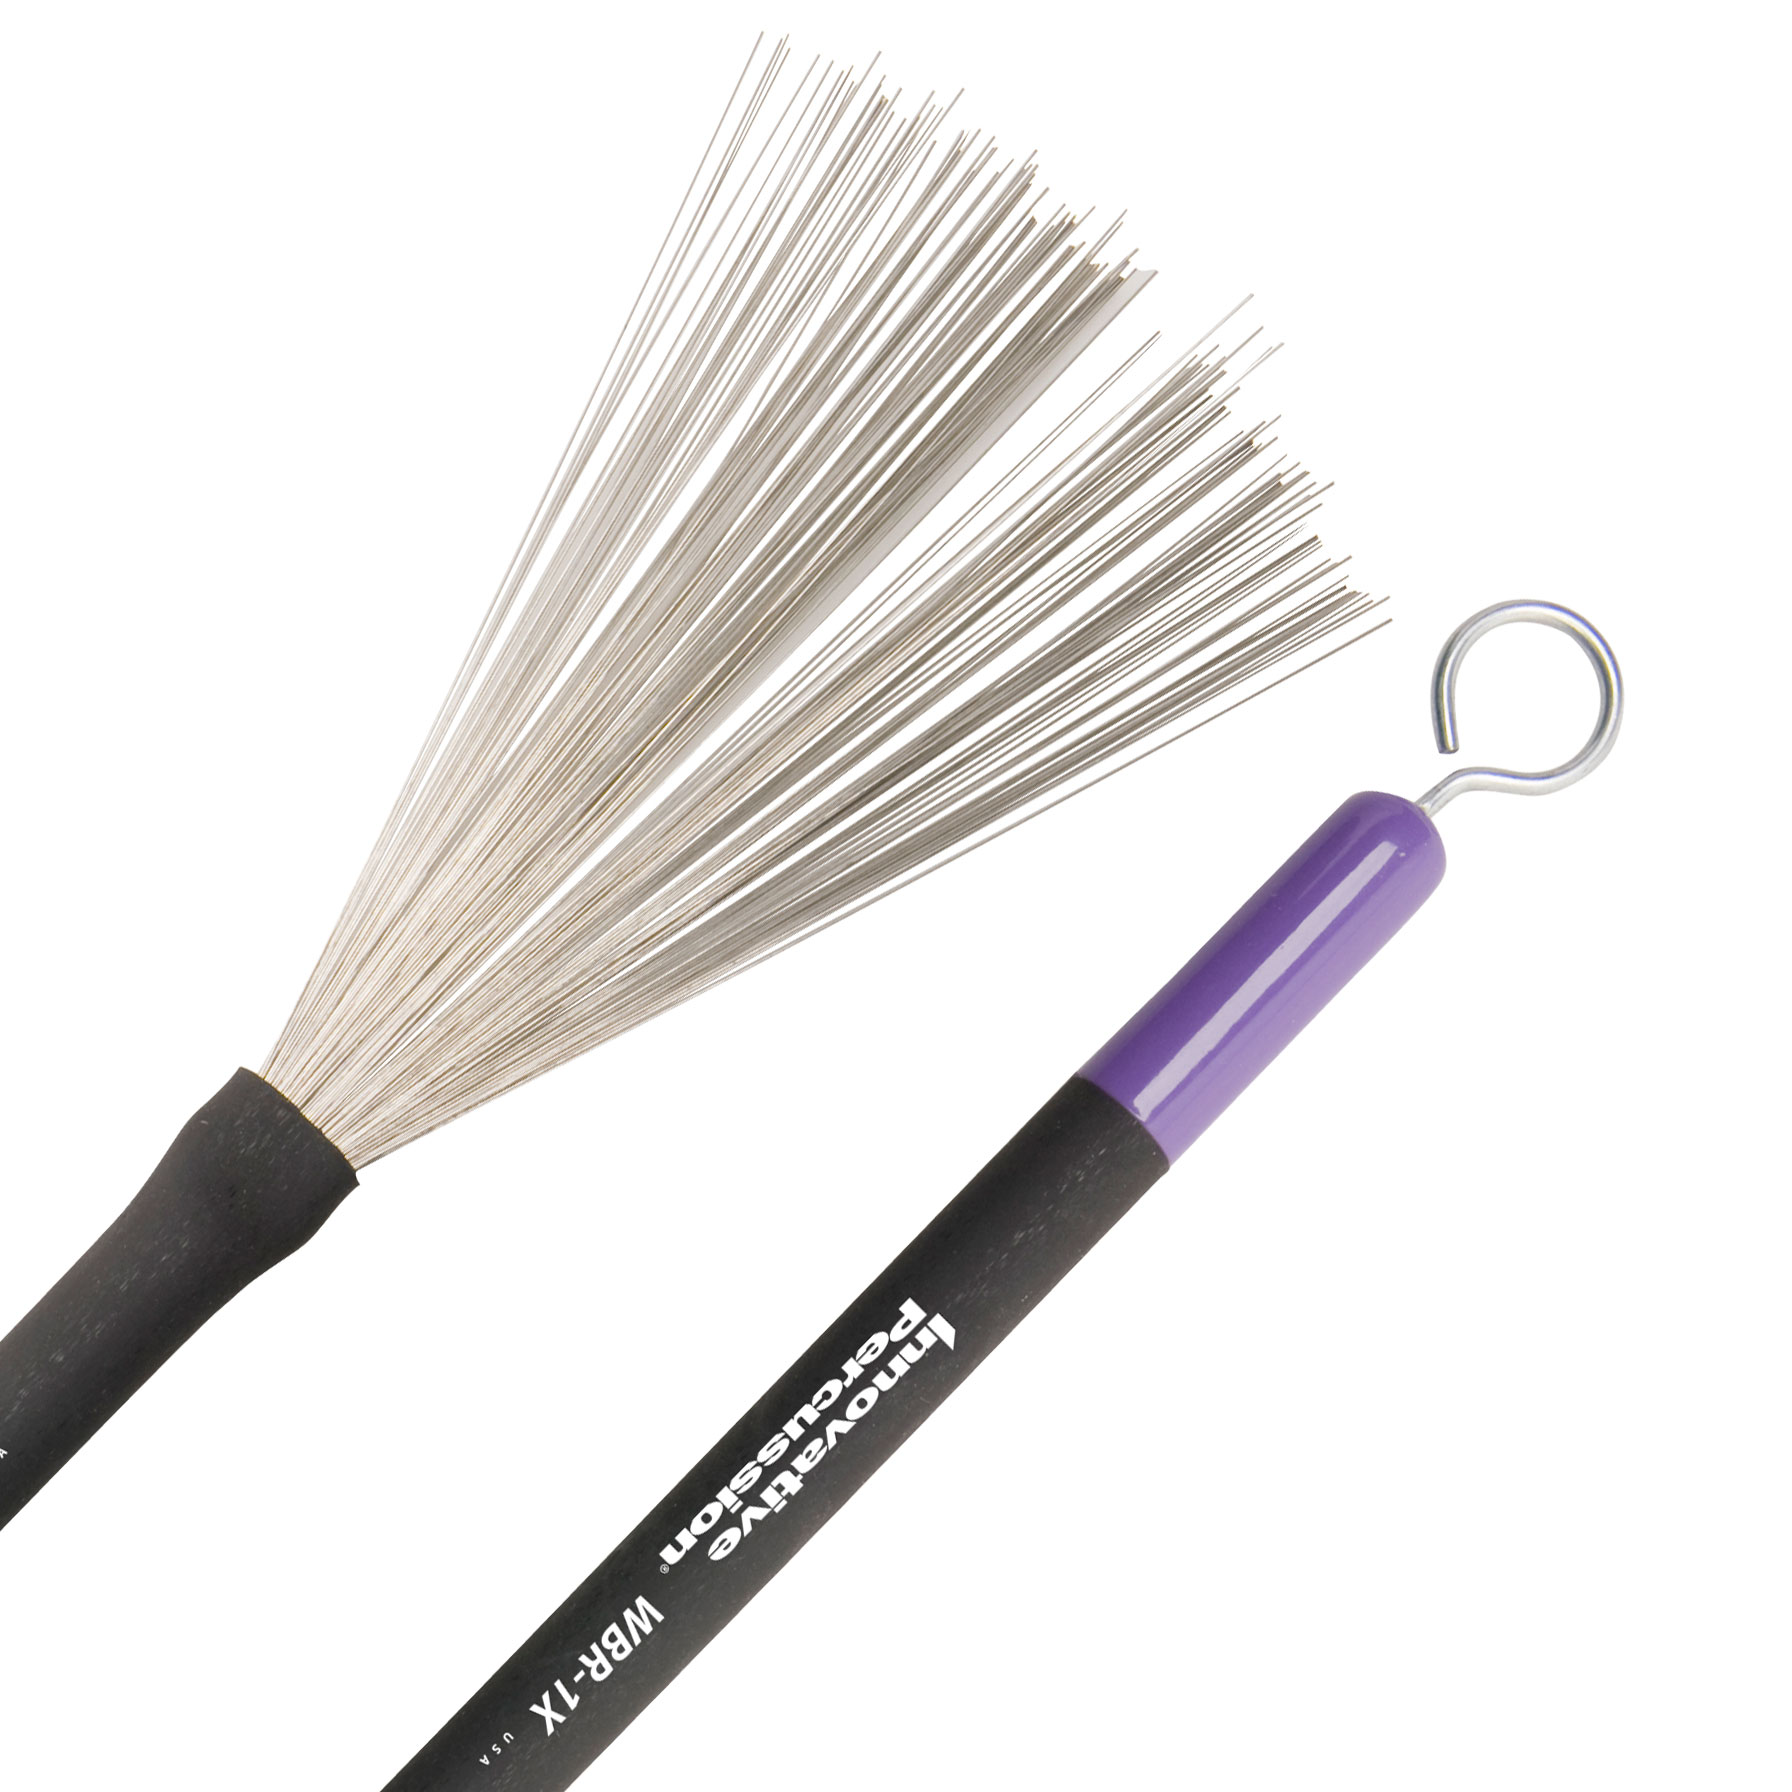 Alternate Image For Innovative Percussion Medium Retractable Wire Brushes  With Pull Rods ...